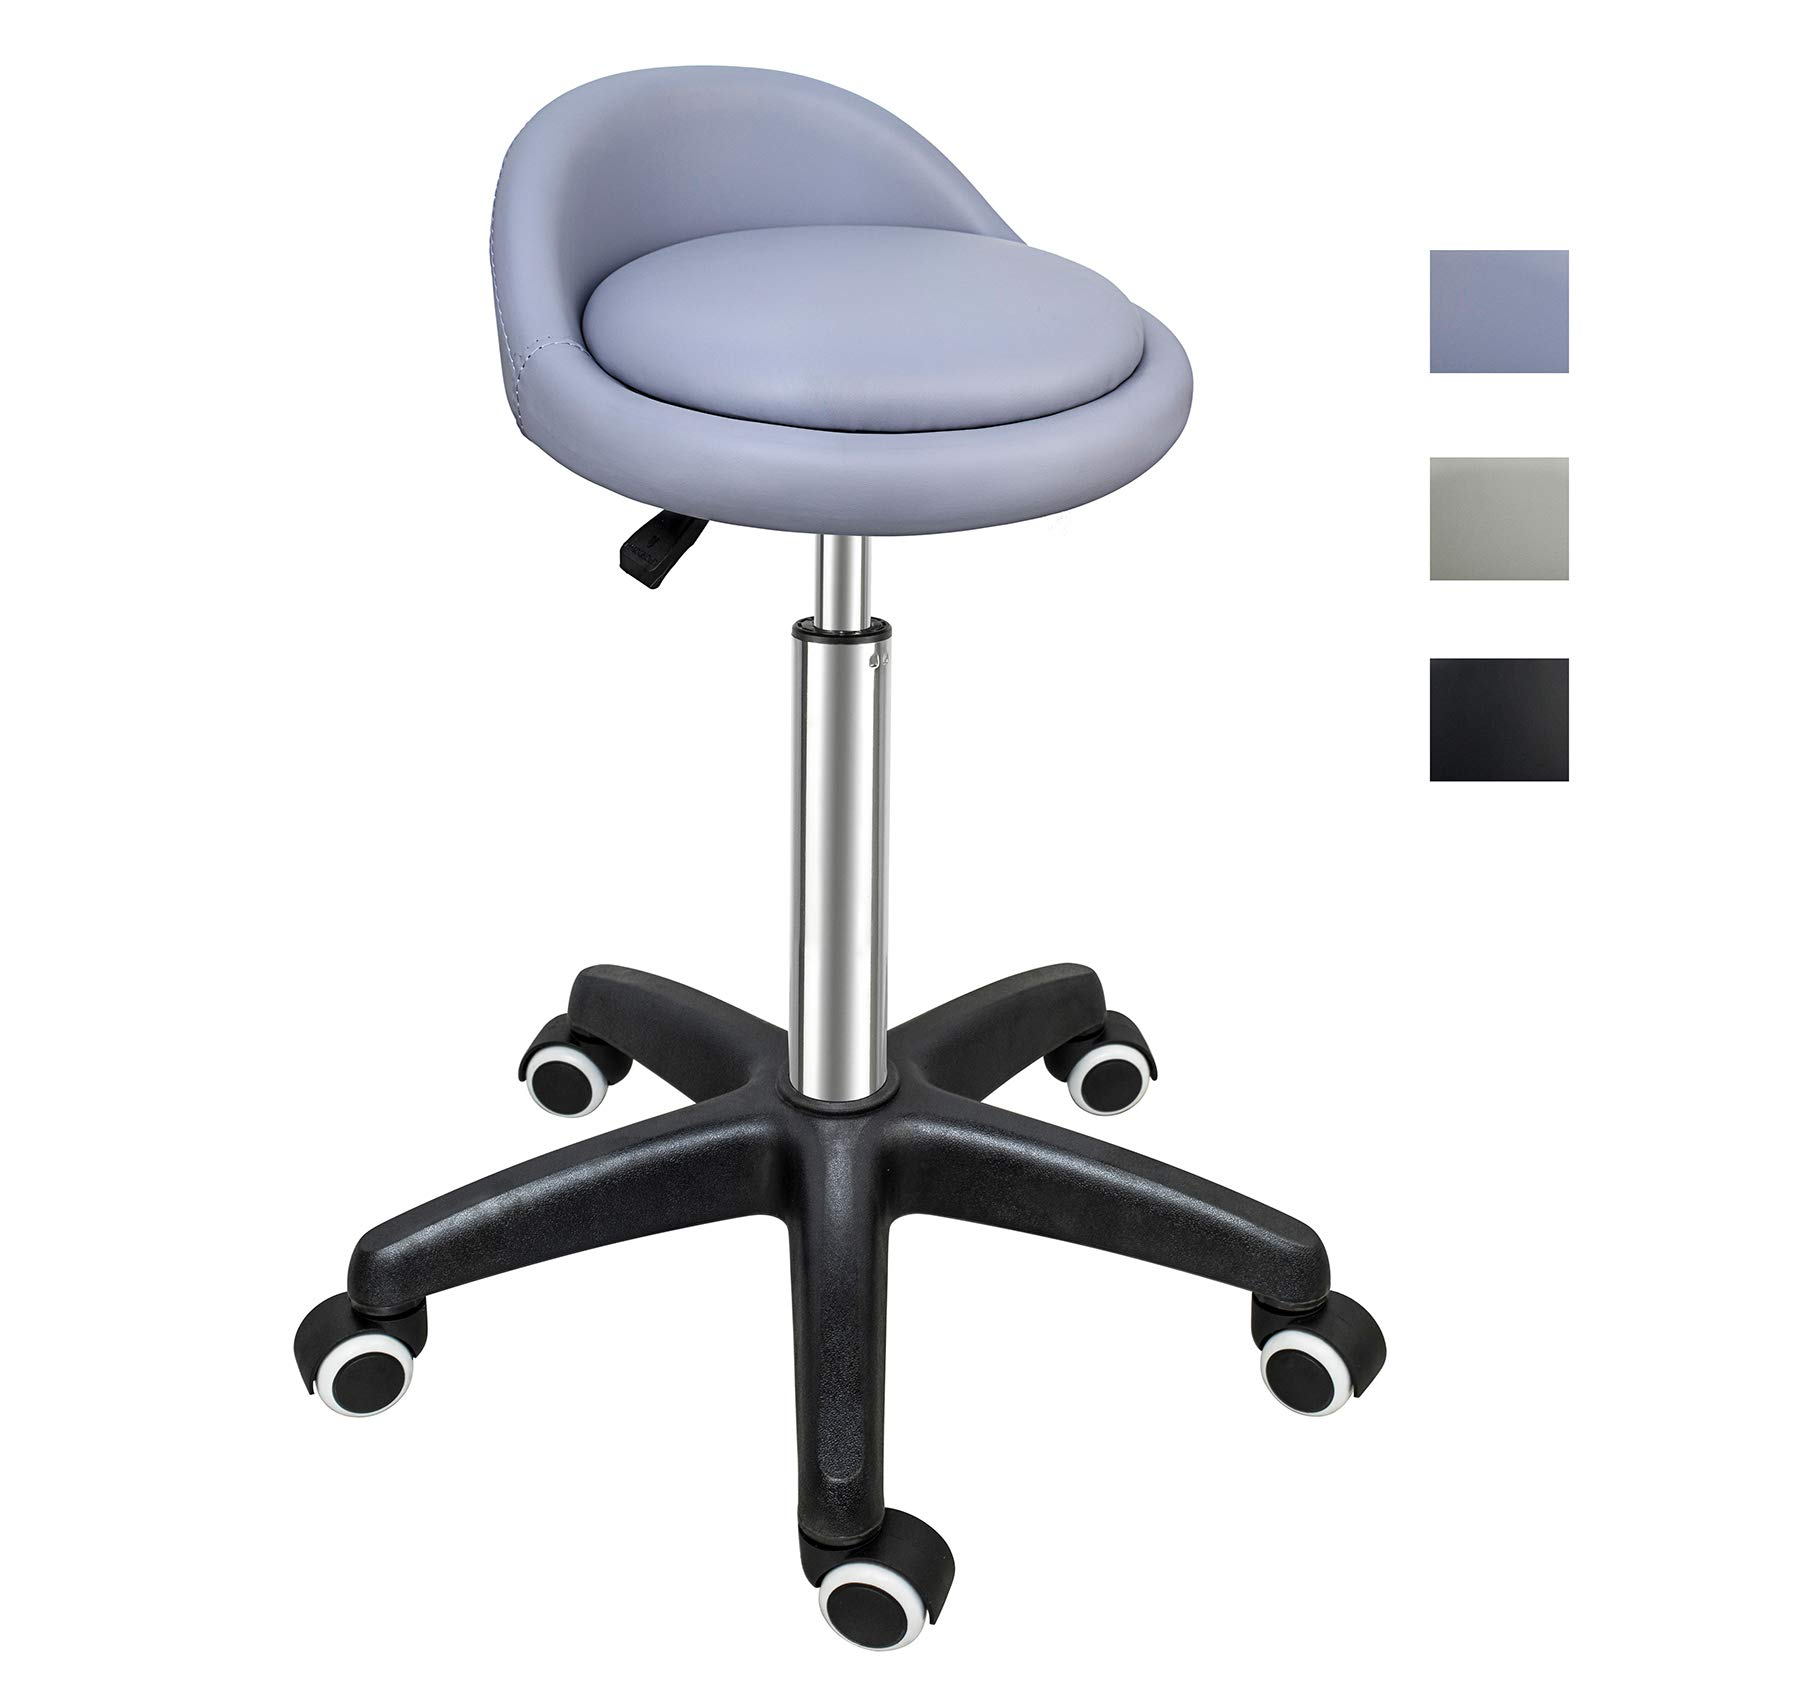 Grace & Grace Professional Gilder Series with Backrest Comfortable Seat Rolling Swivel Pneumatic Adjustable Heavy Duty Stool for Shop, Salon, Office and Home (Classic Quality Nylon Base, Purple) by Grace & Grace